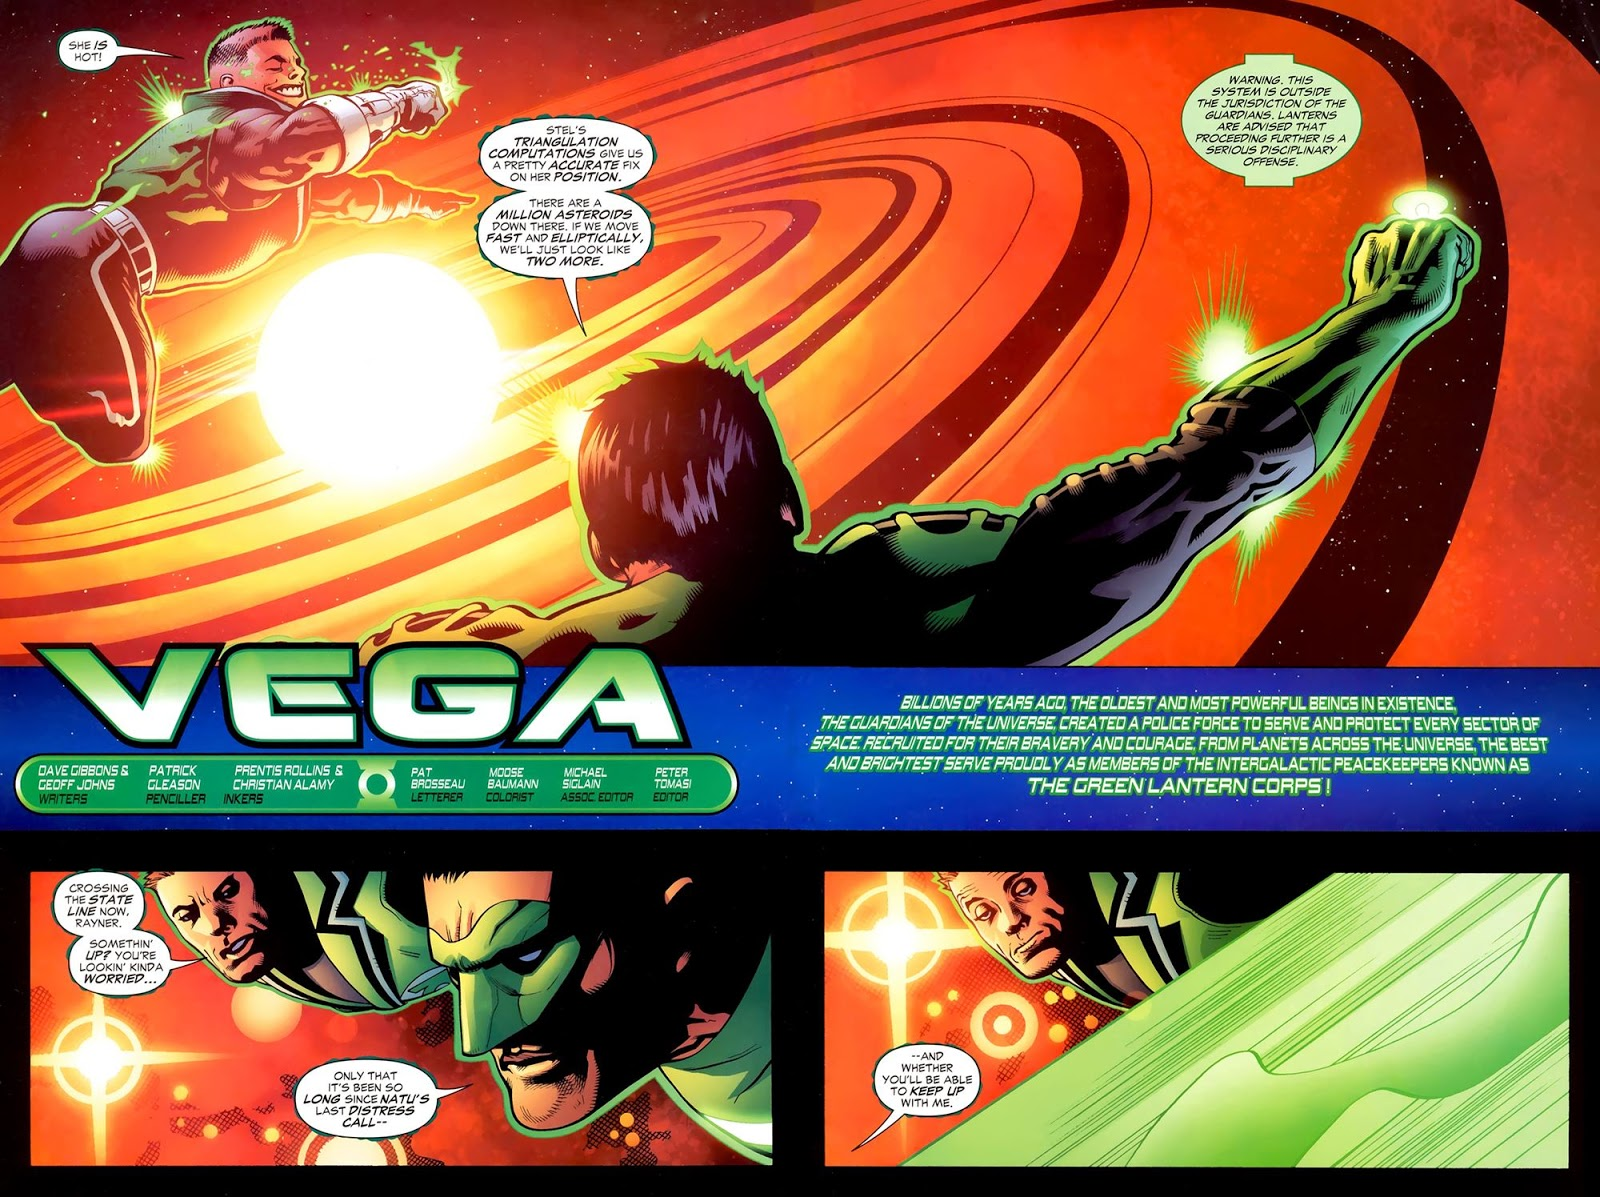 green lantern corps recharge 03 of 5 2006 viewcomic reading